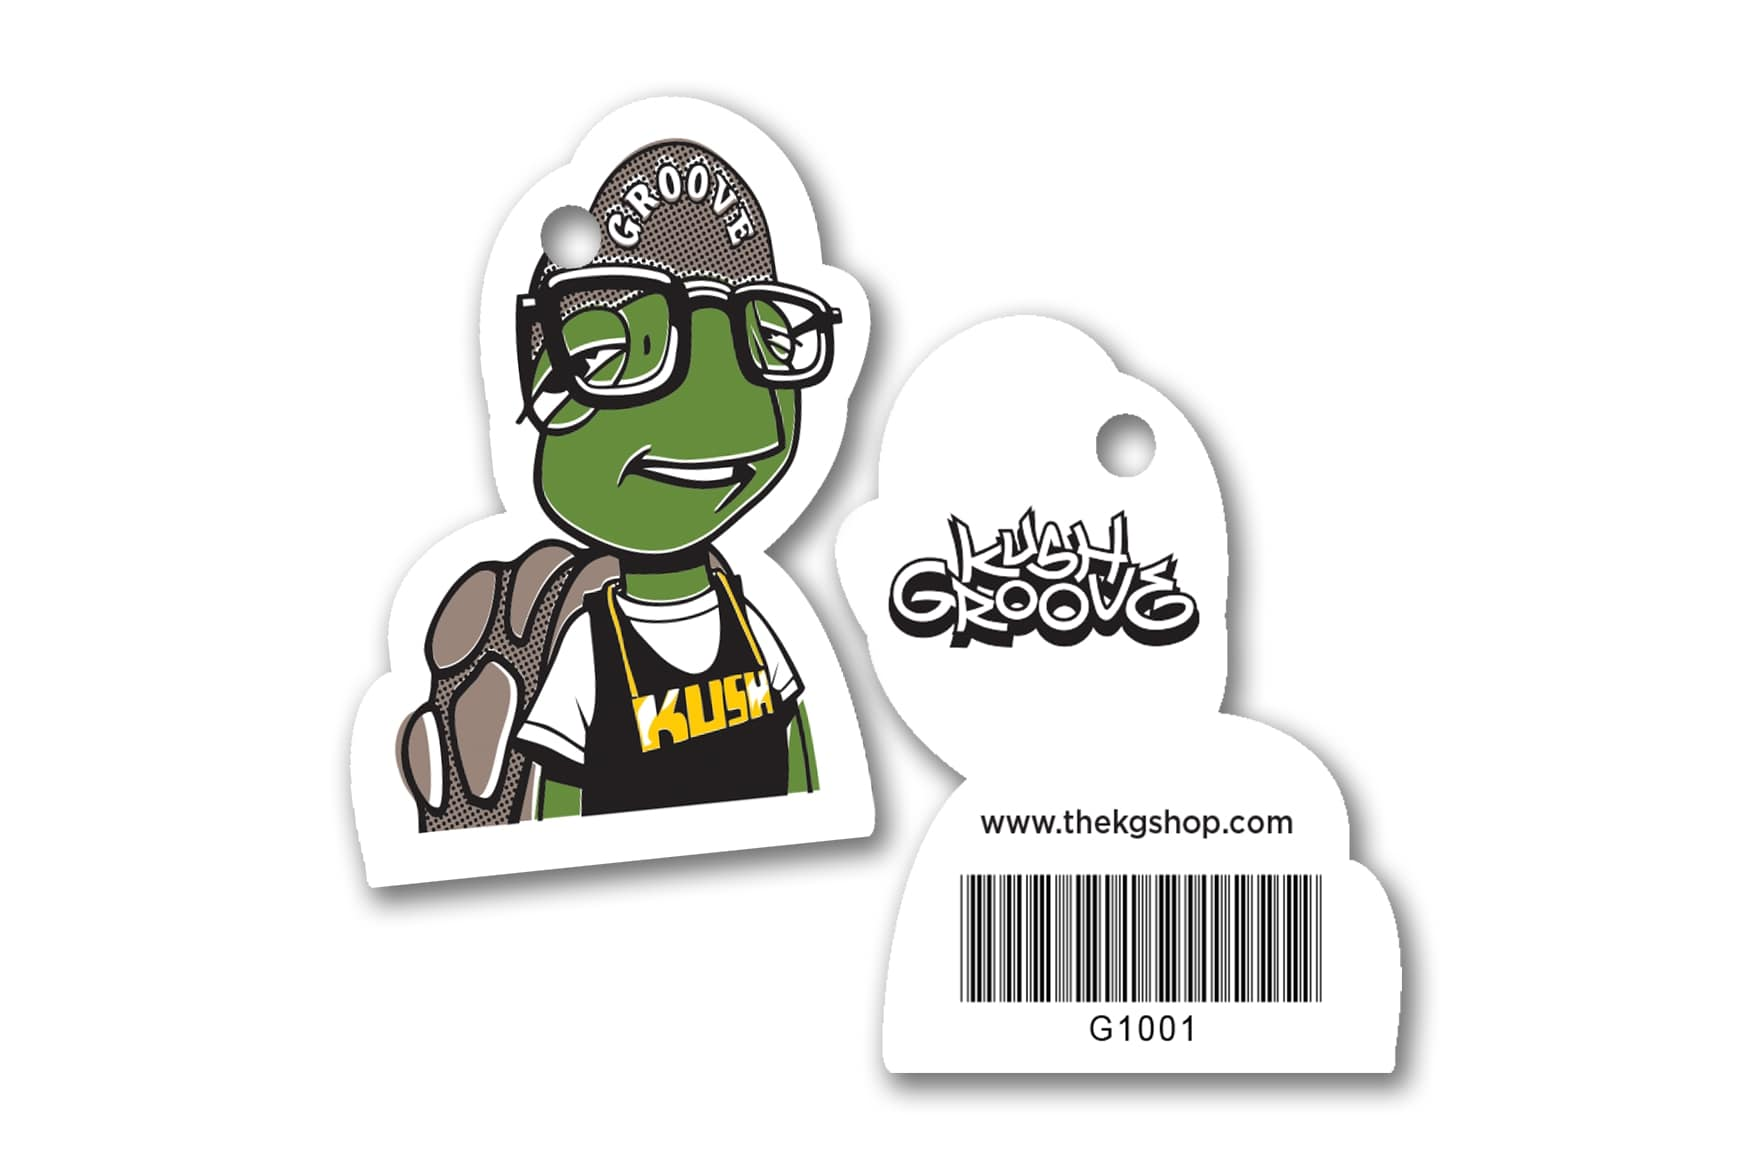 Cannabis Gift Cards and Die Cut Key Tags for Kush Groove